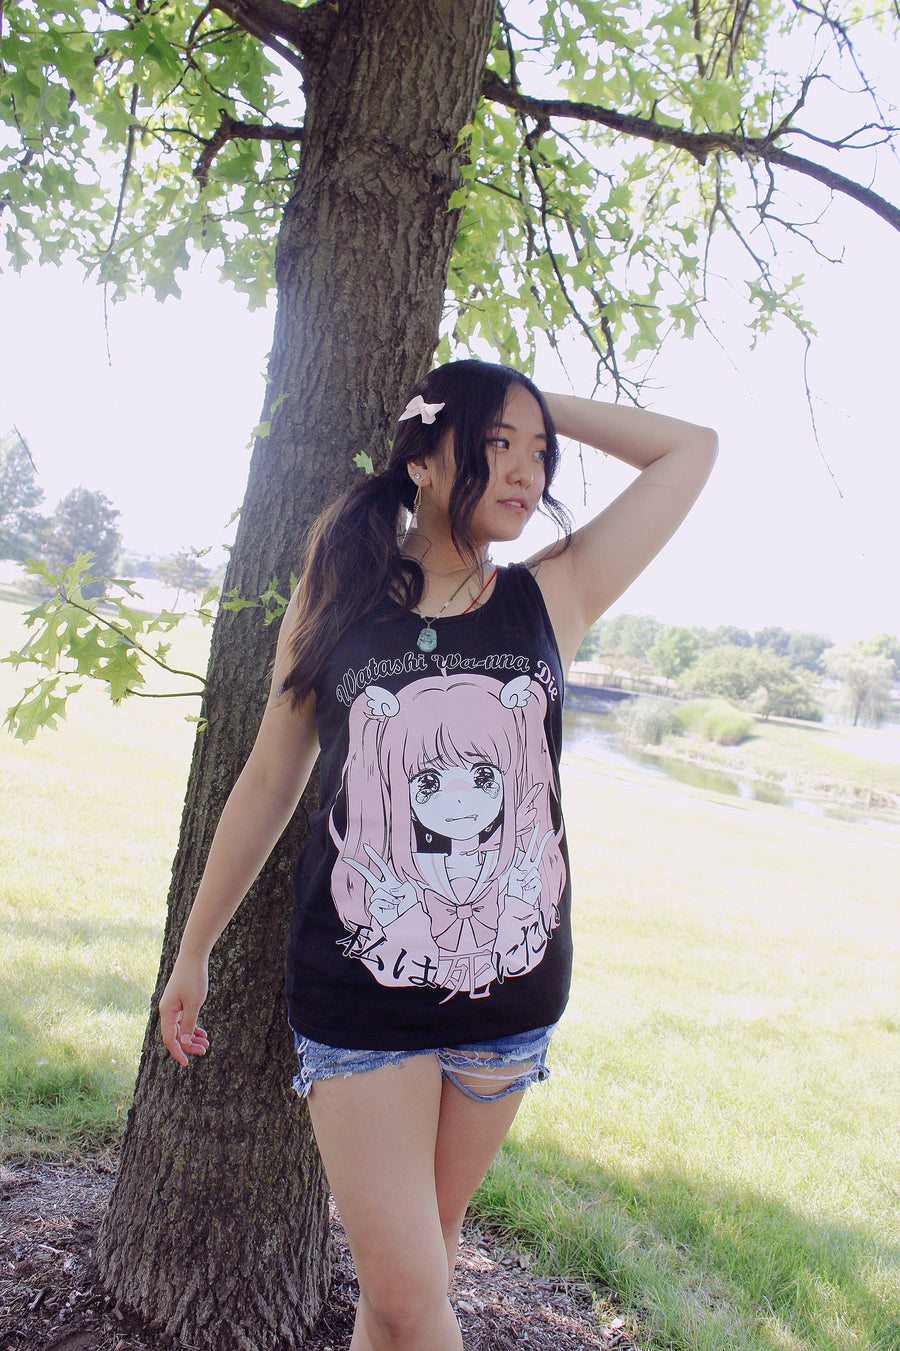 Watashi Tank Top-Tank Top-Ibble's Scribbles-Small-Black-Ibble's Scribbles-charm-pastel-kawaii-cute